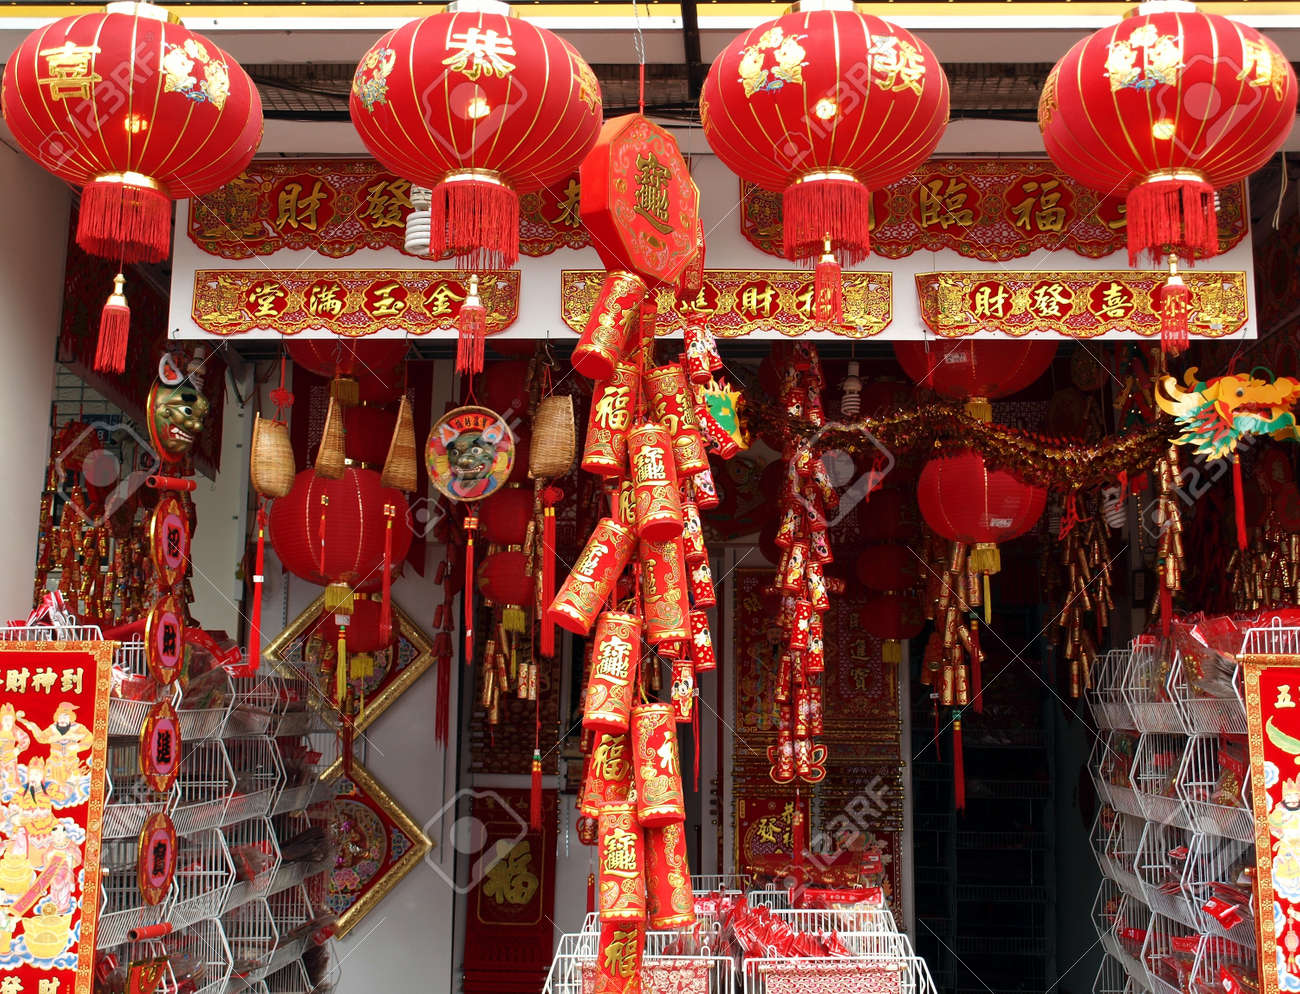 kaohsiung taiwan january 22 with chinese new year approaching stock photo picture and royalty free image image 17523269 kaohsiung taiwan january 22 with chinese new year approaching